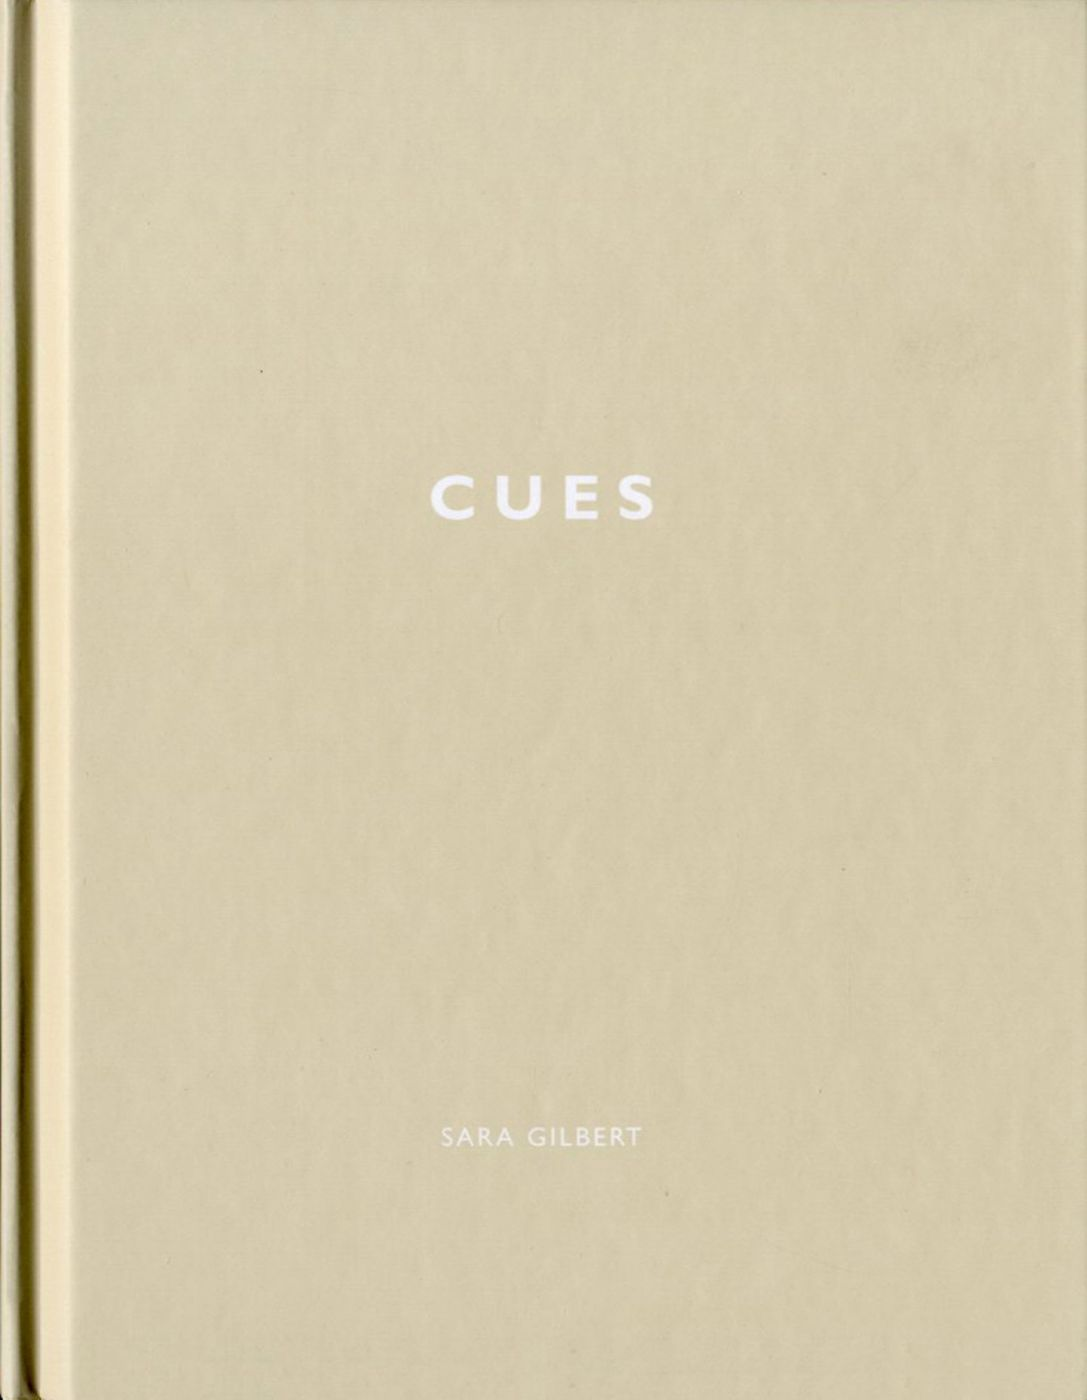 Sara Gilbert: Cues (One Picture Book #19), Limited Edition (with Print)